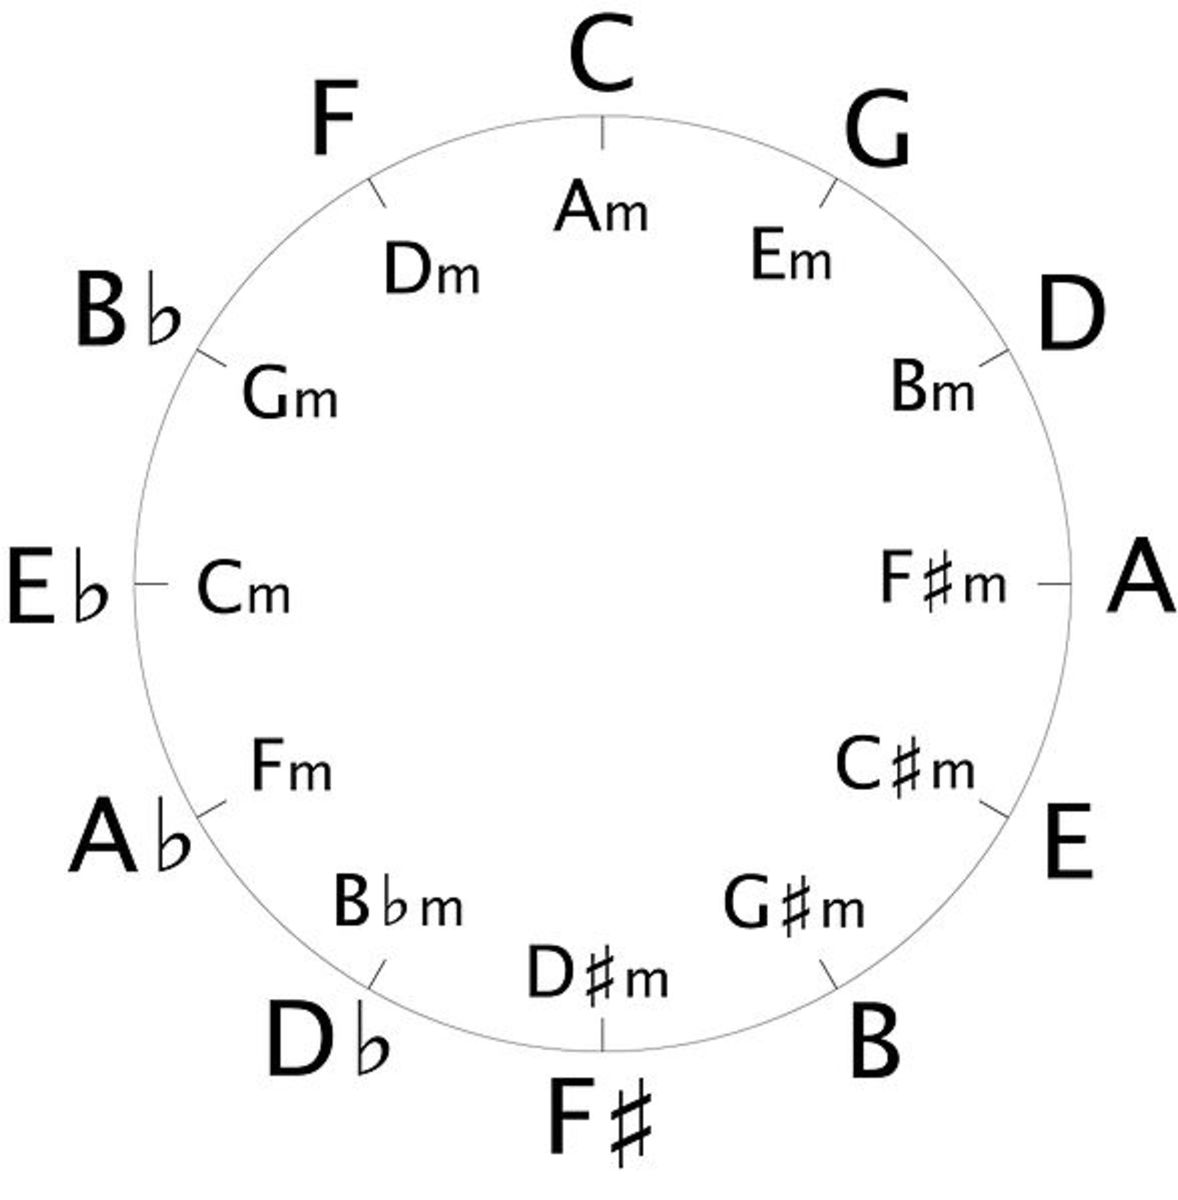 The Circle of Fifths showing sharp keys on the right, flat keys on the left, and minor keys on the inner ring